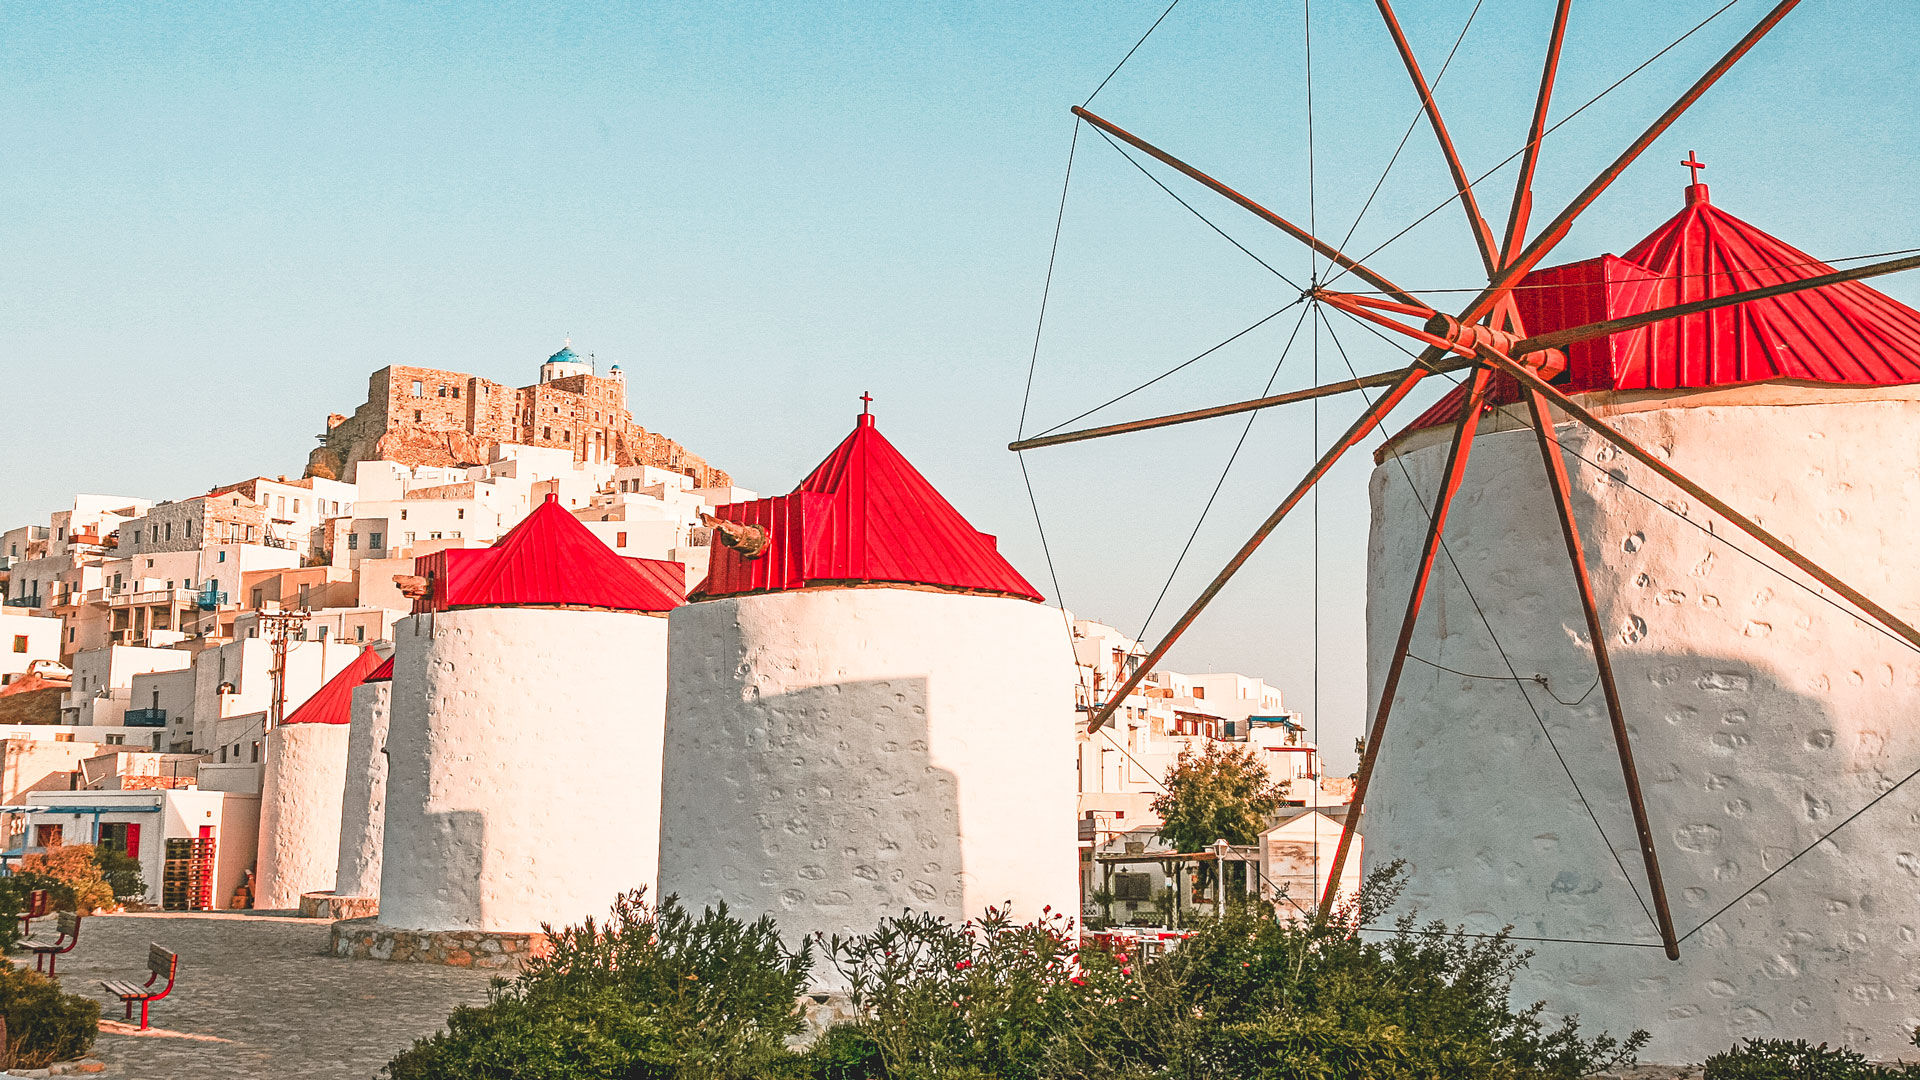 The Windmills of Hora in Astypalaia island